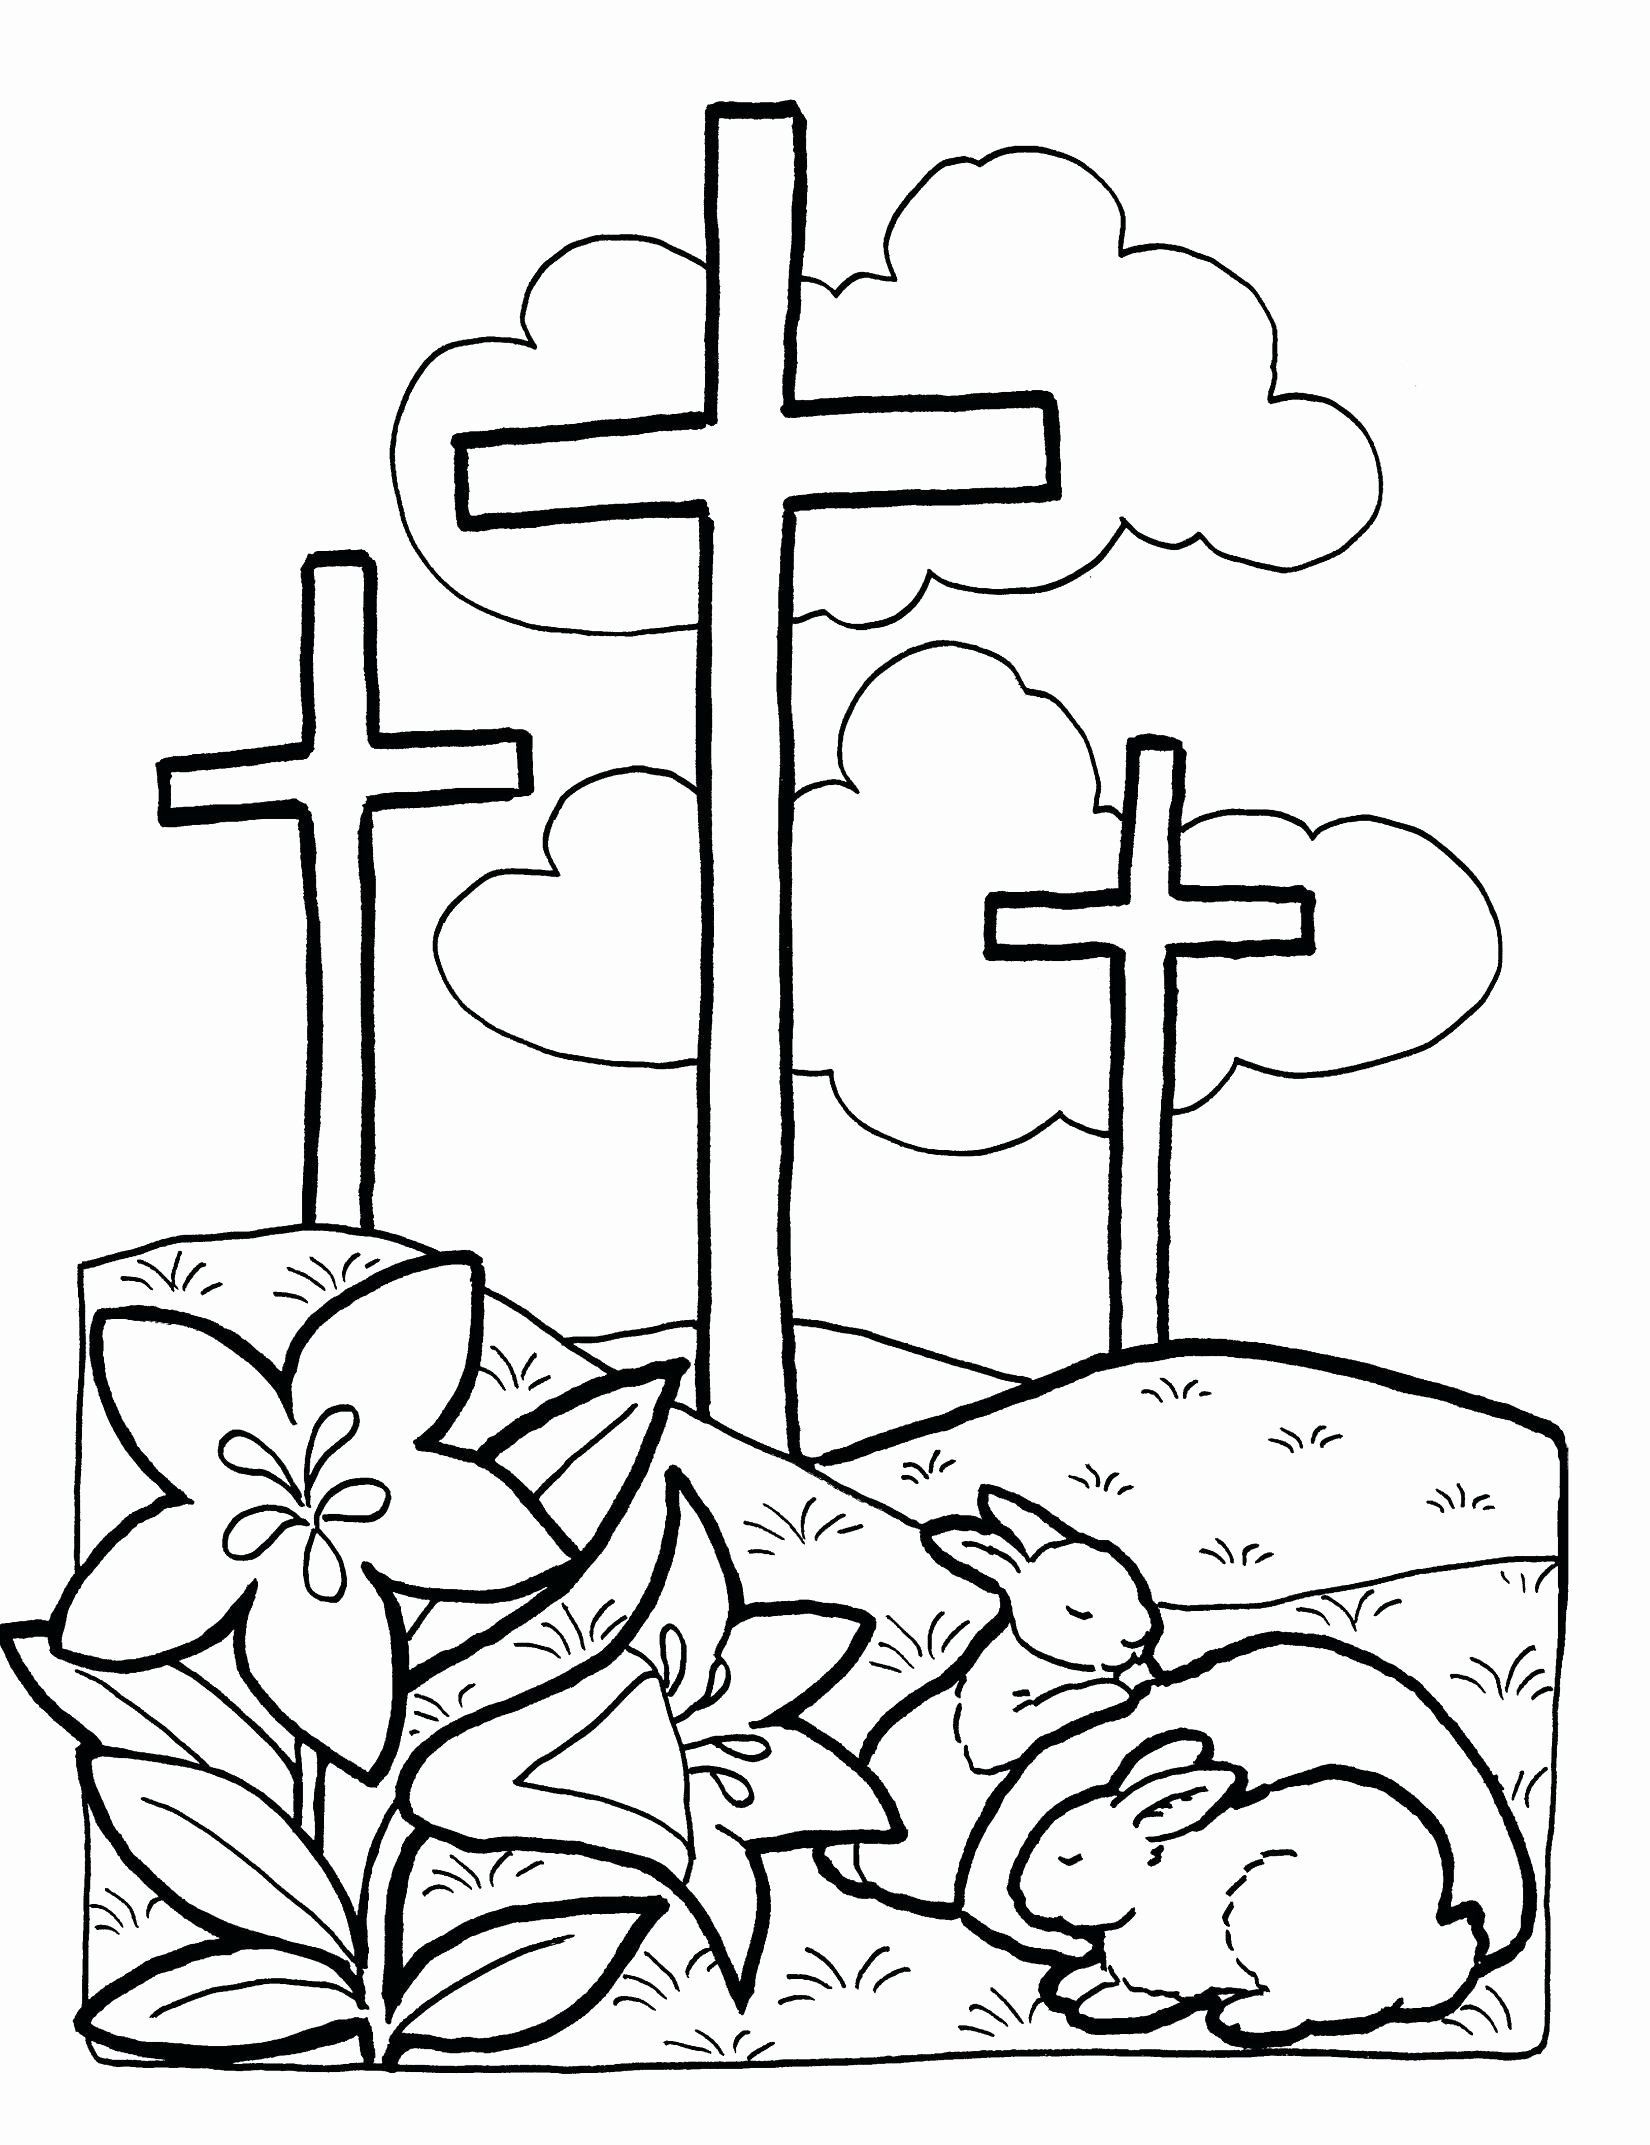 Cross With Flowers Coloring Pages Unique Easter Coloring Pages Jesus Christ Free Easter Coloring Pages Easter Coloring Pages Printable Spring Coloring Pages